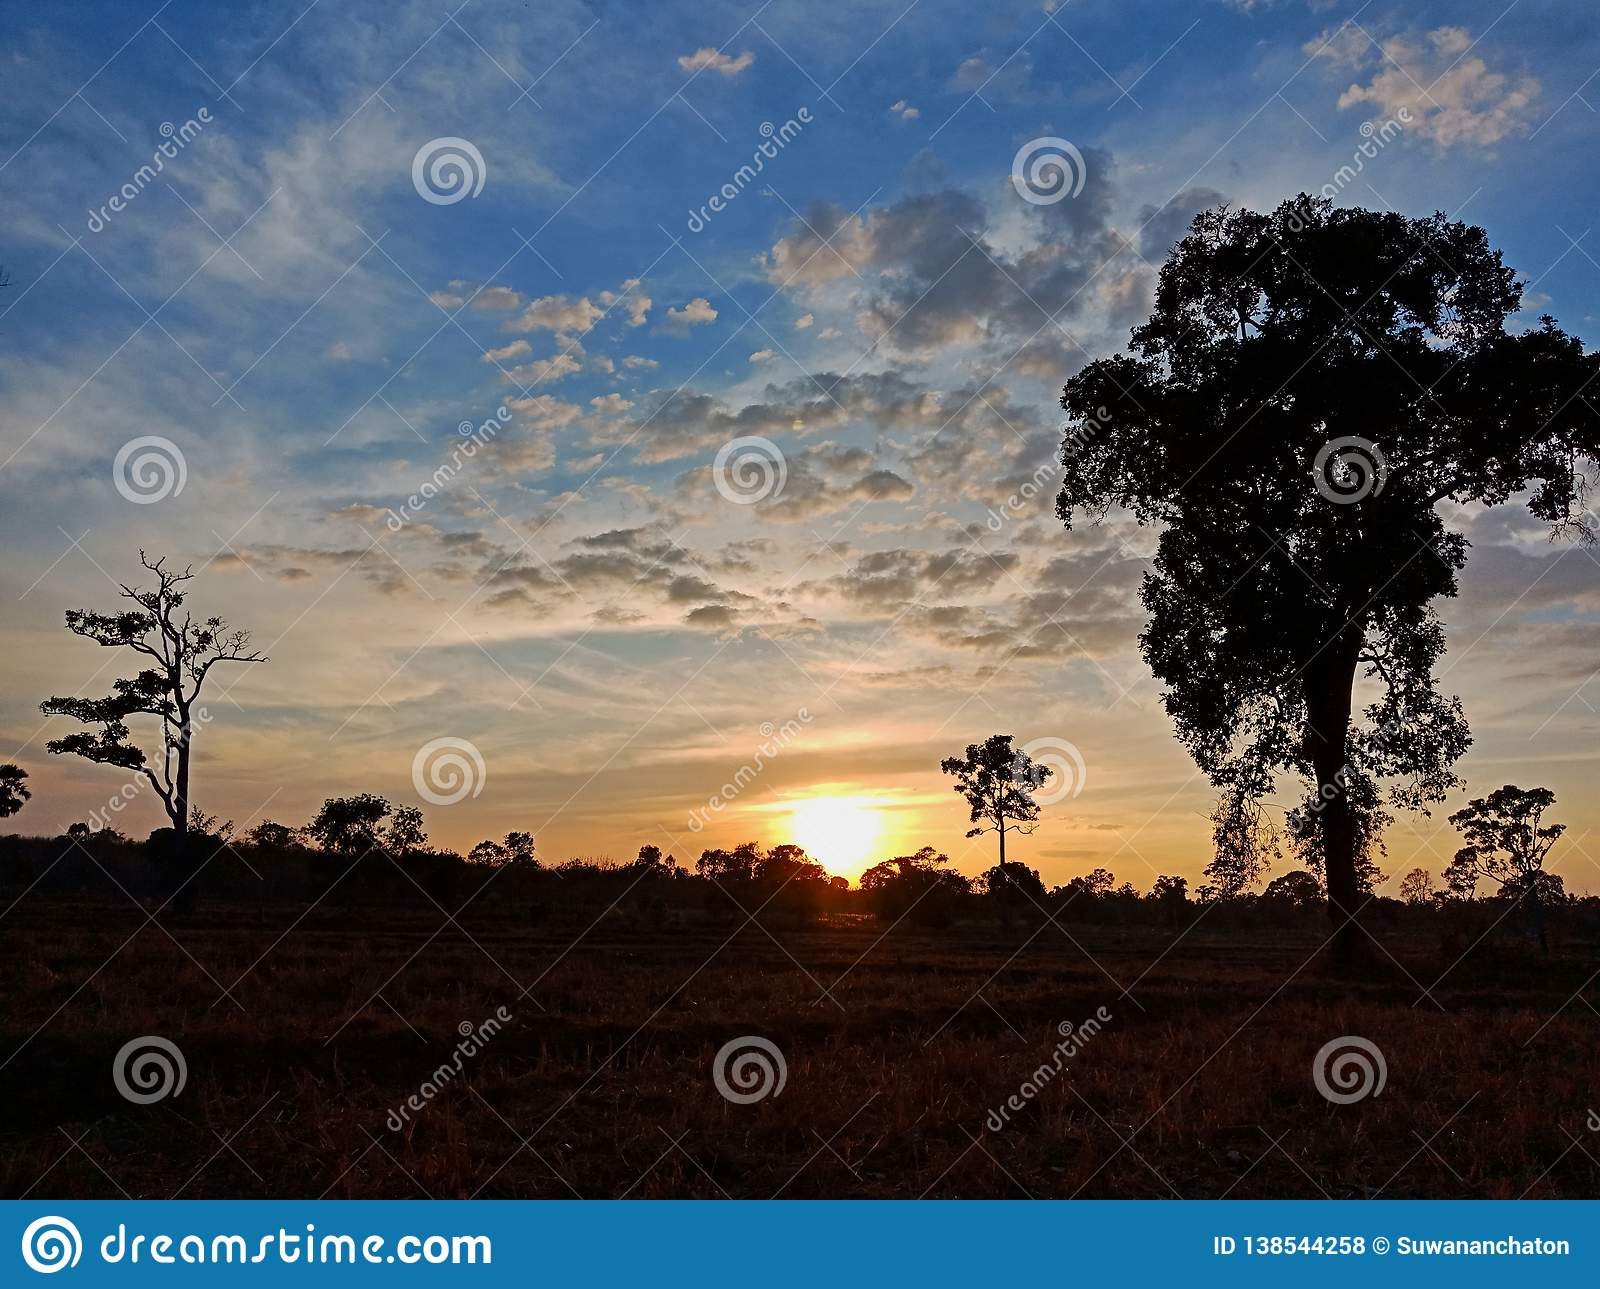 Sunset view in farm